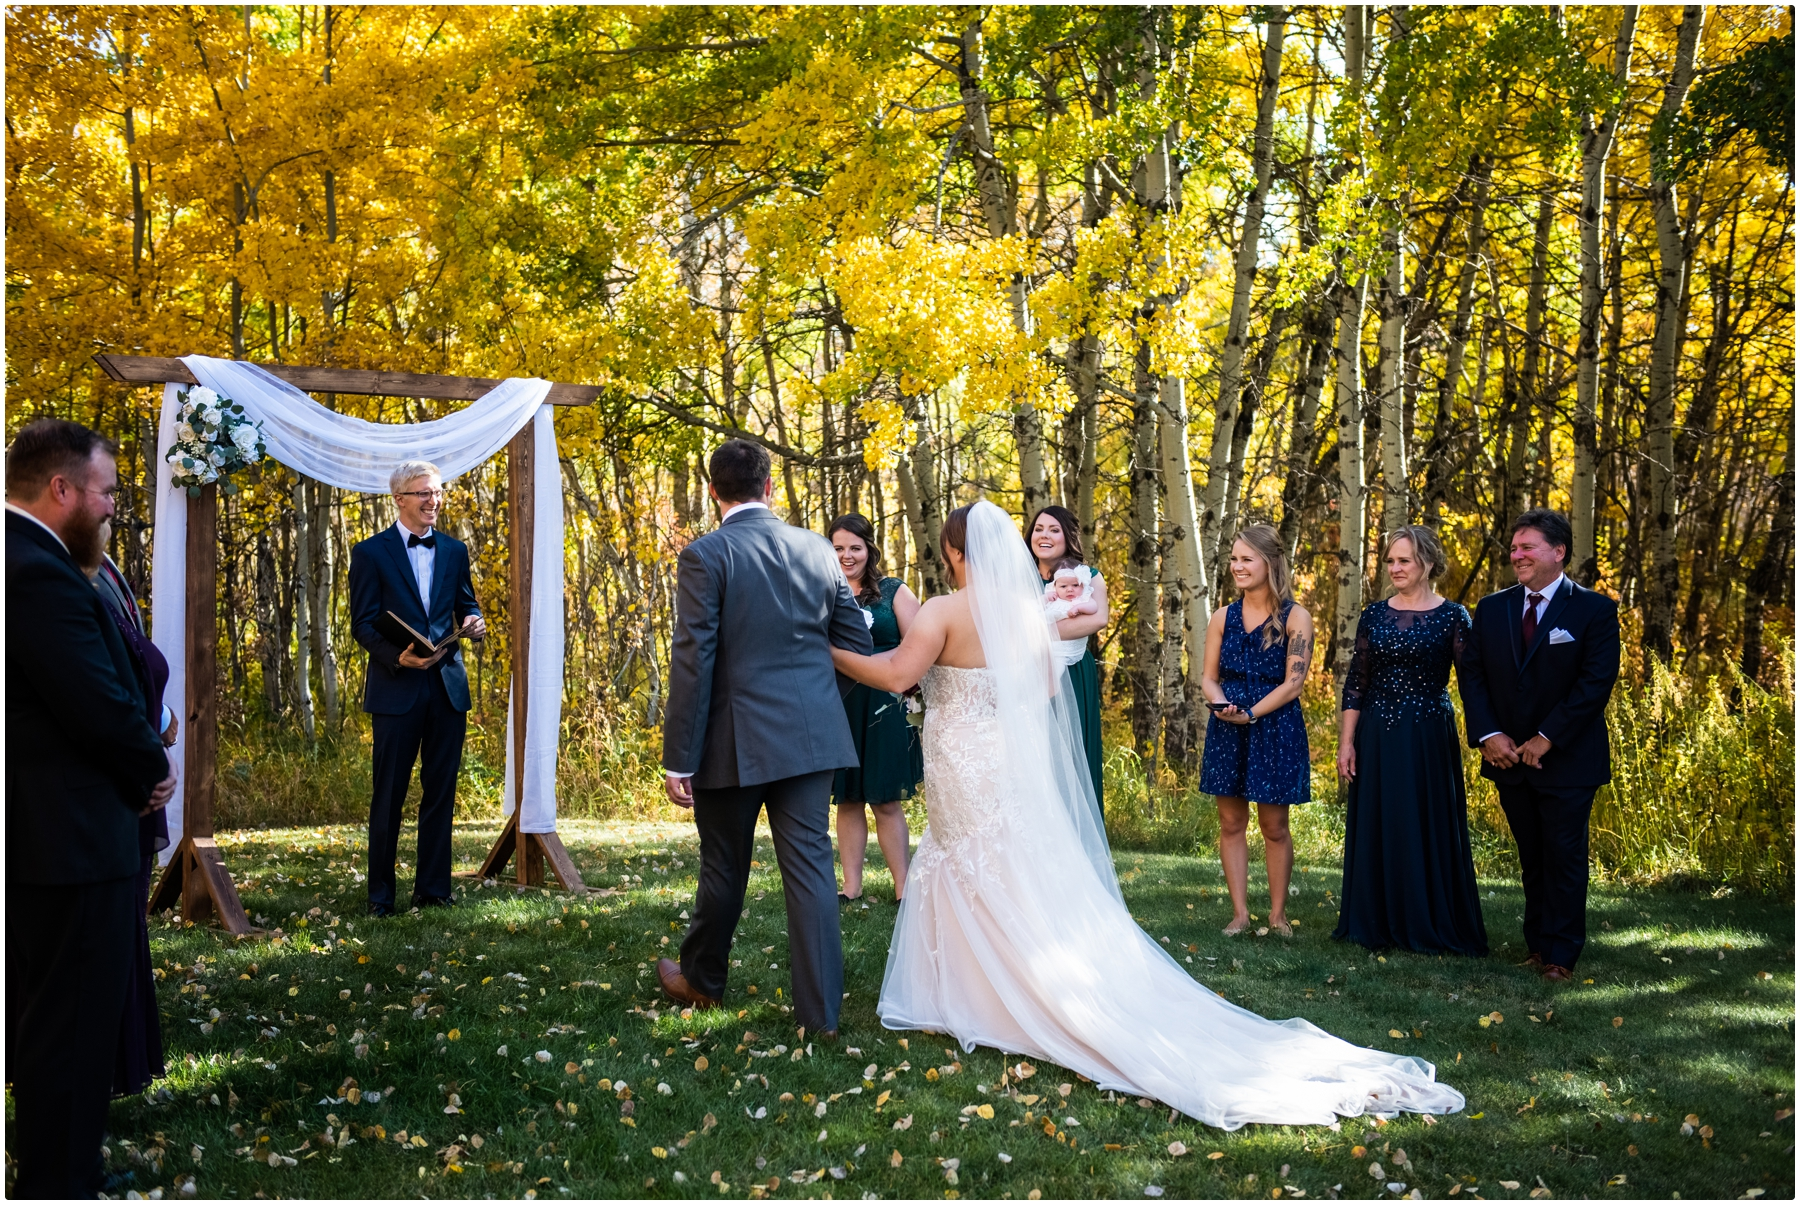 Cochrane Mansion Backyard Wedding Ceremony Photography